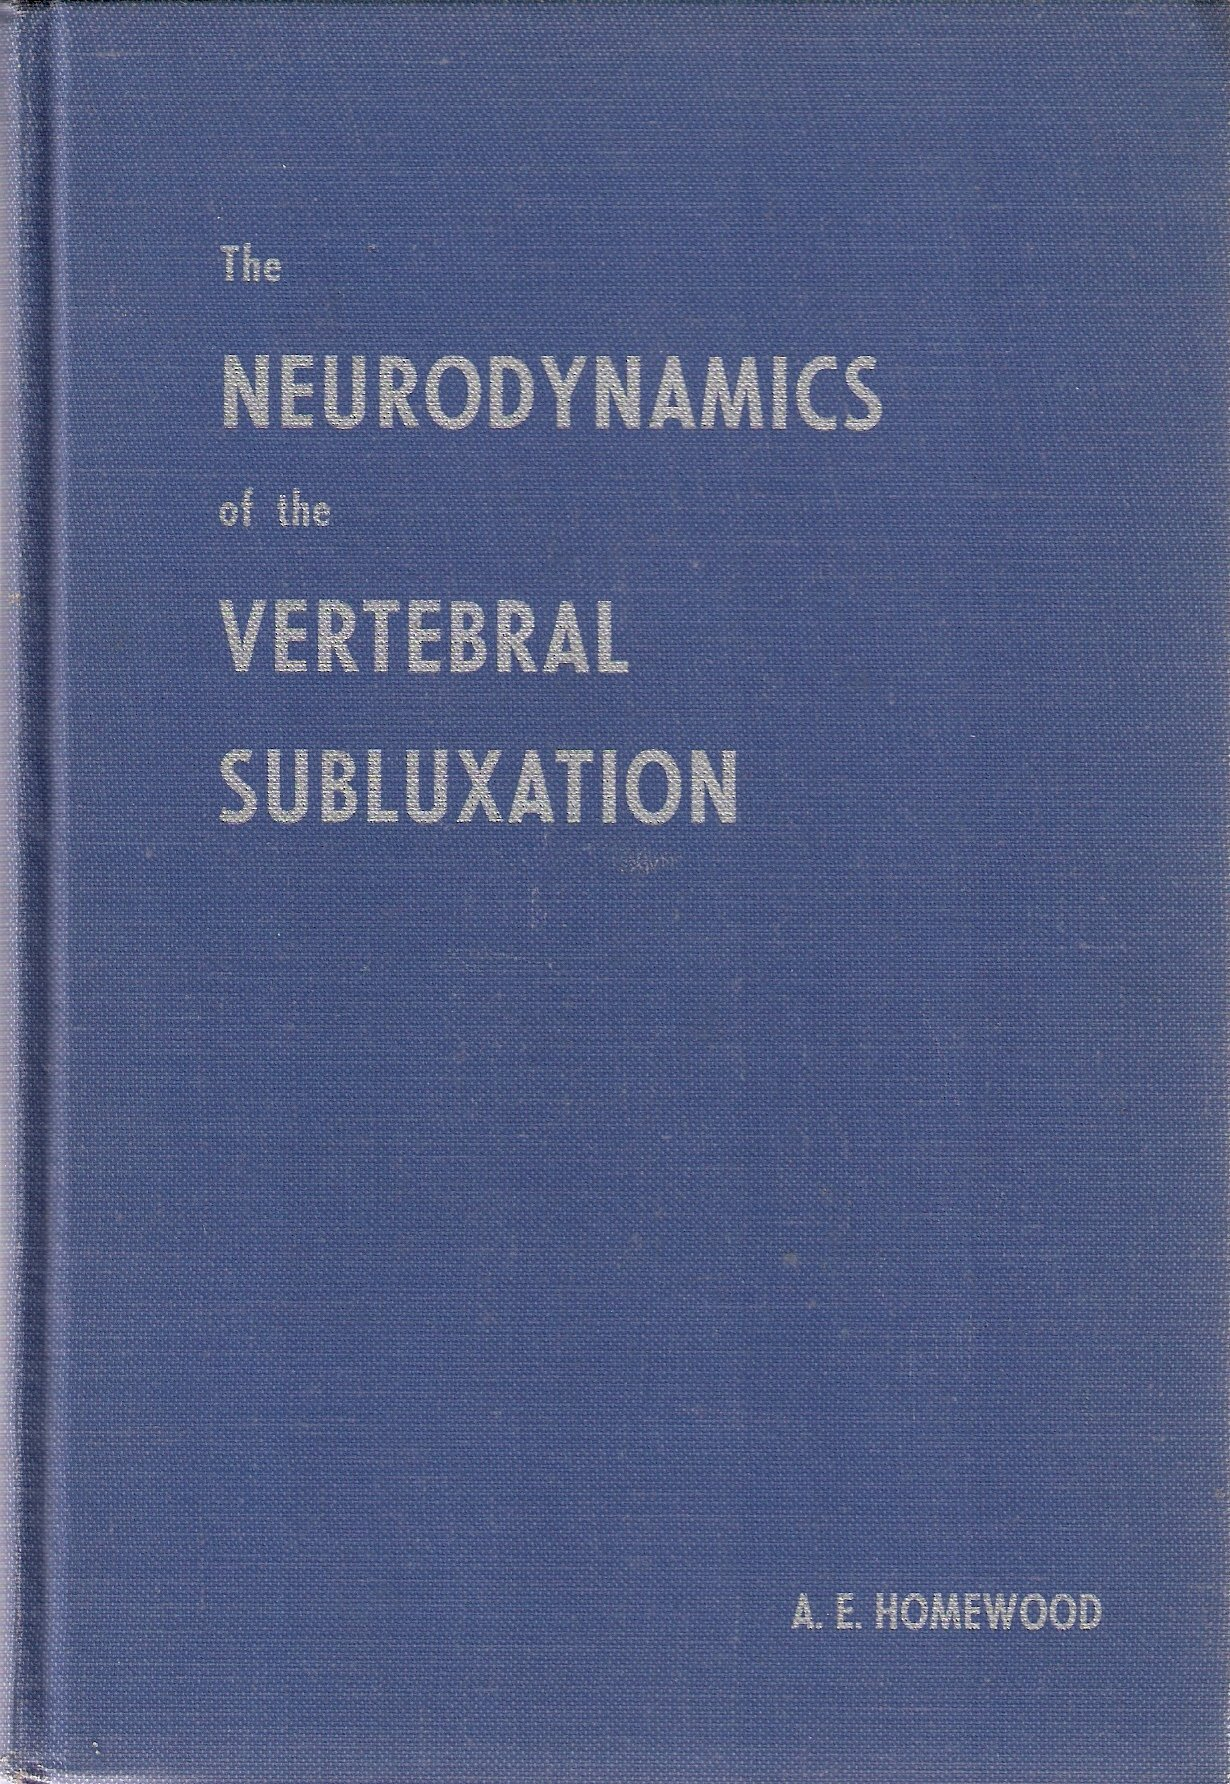 The Neurodynamics of the Vertebral Subluxation